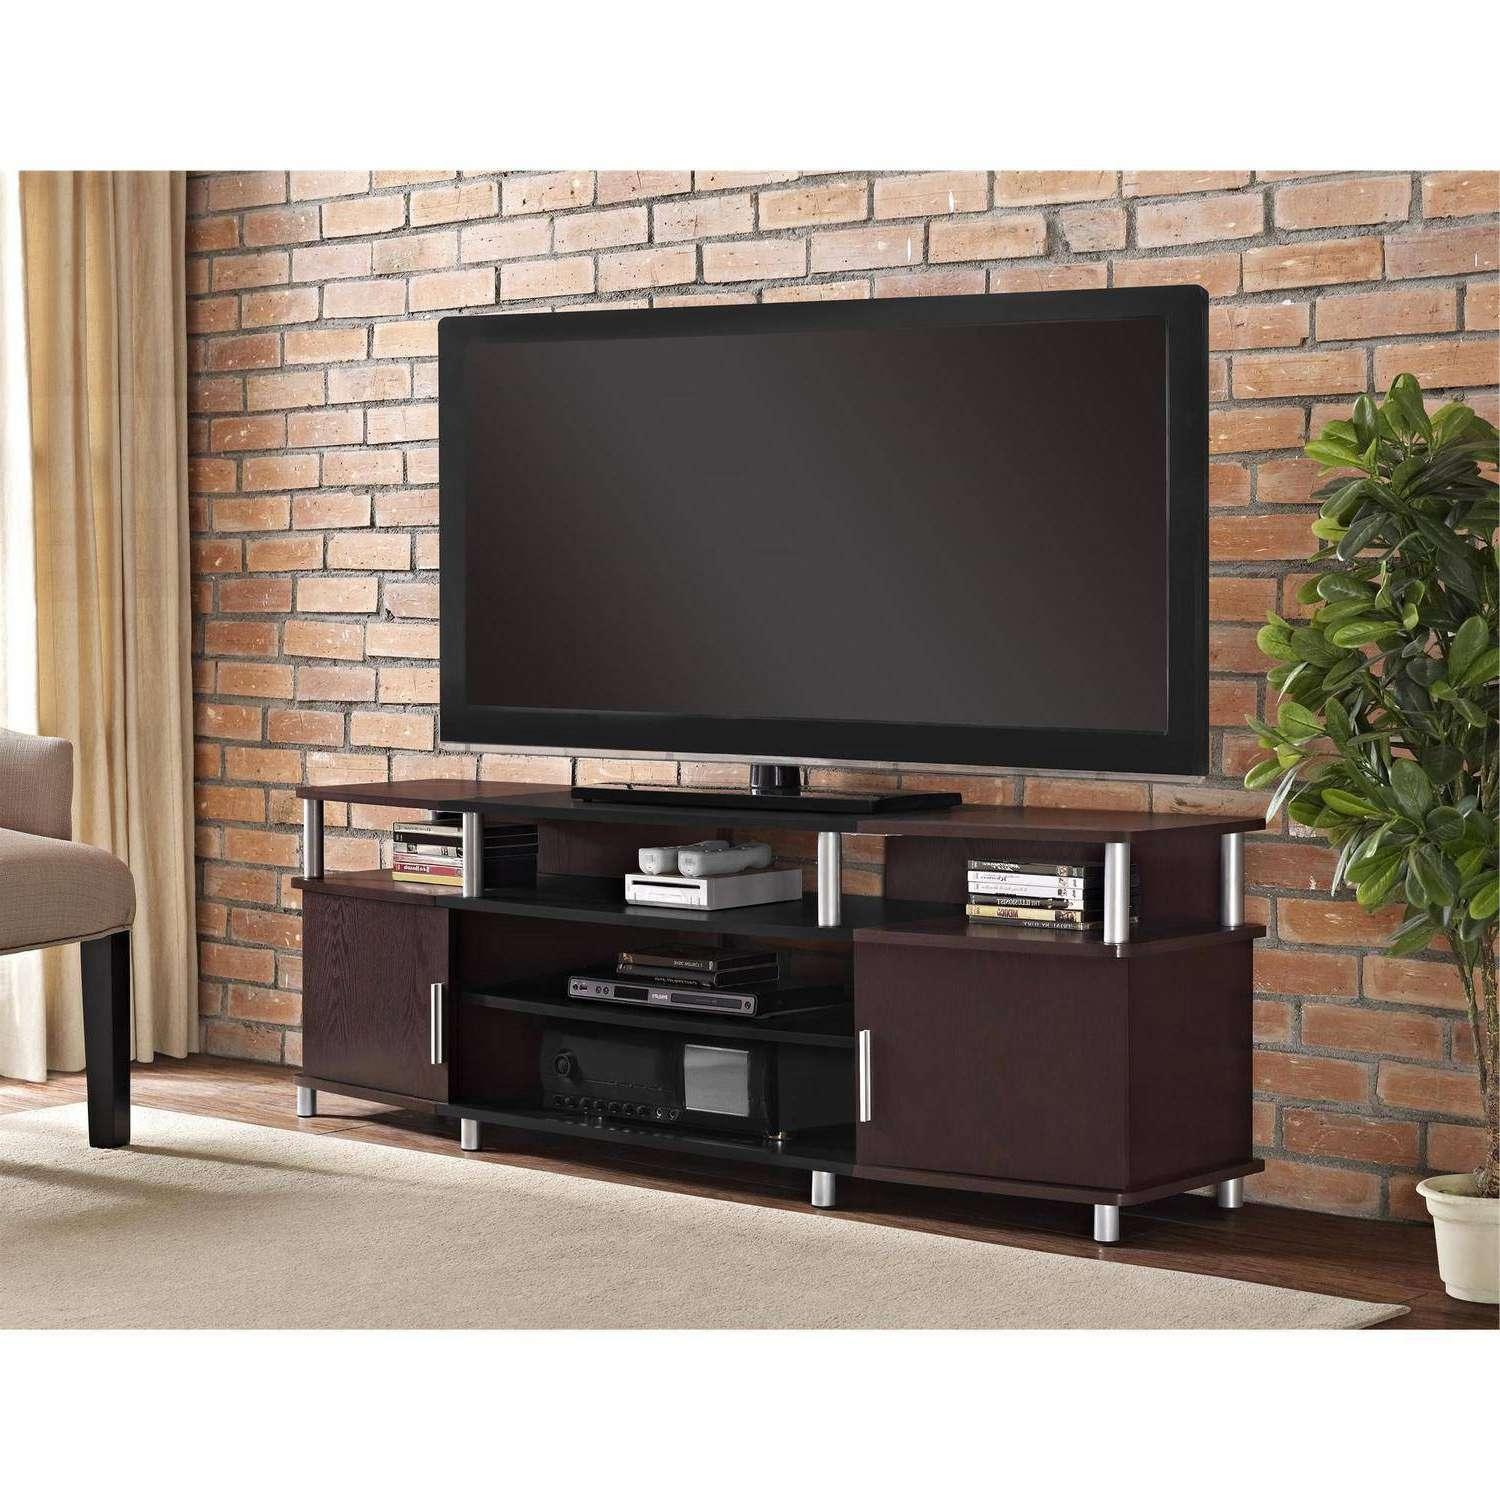 Tv Stands & Entertainment Centers – Walmart Inside Tv Stands 40 Inches Wide (View 15 of 15)